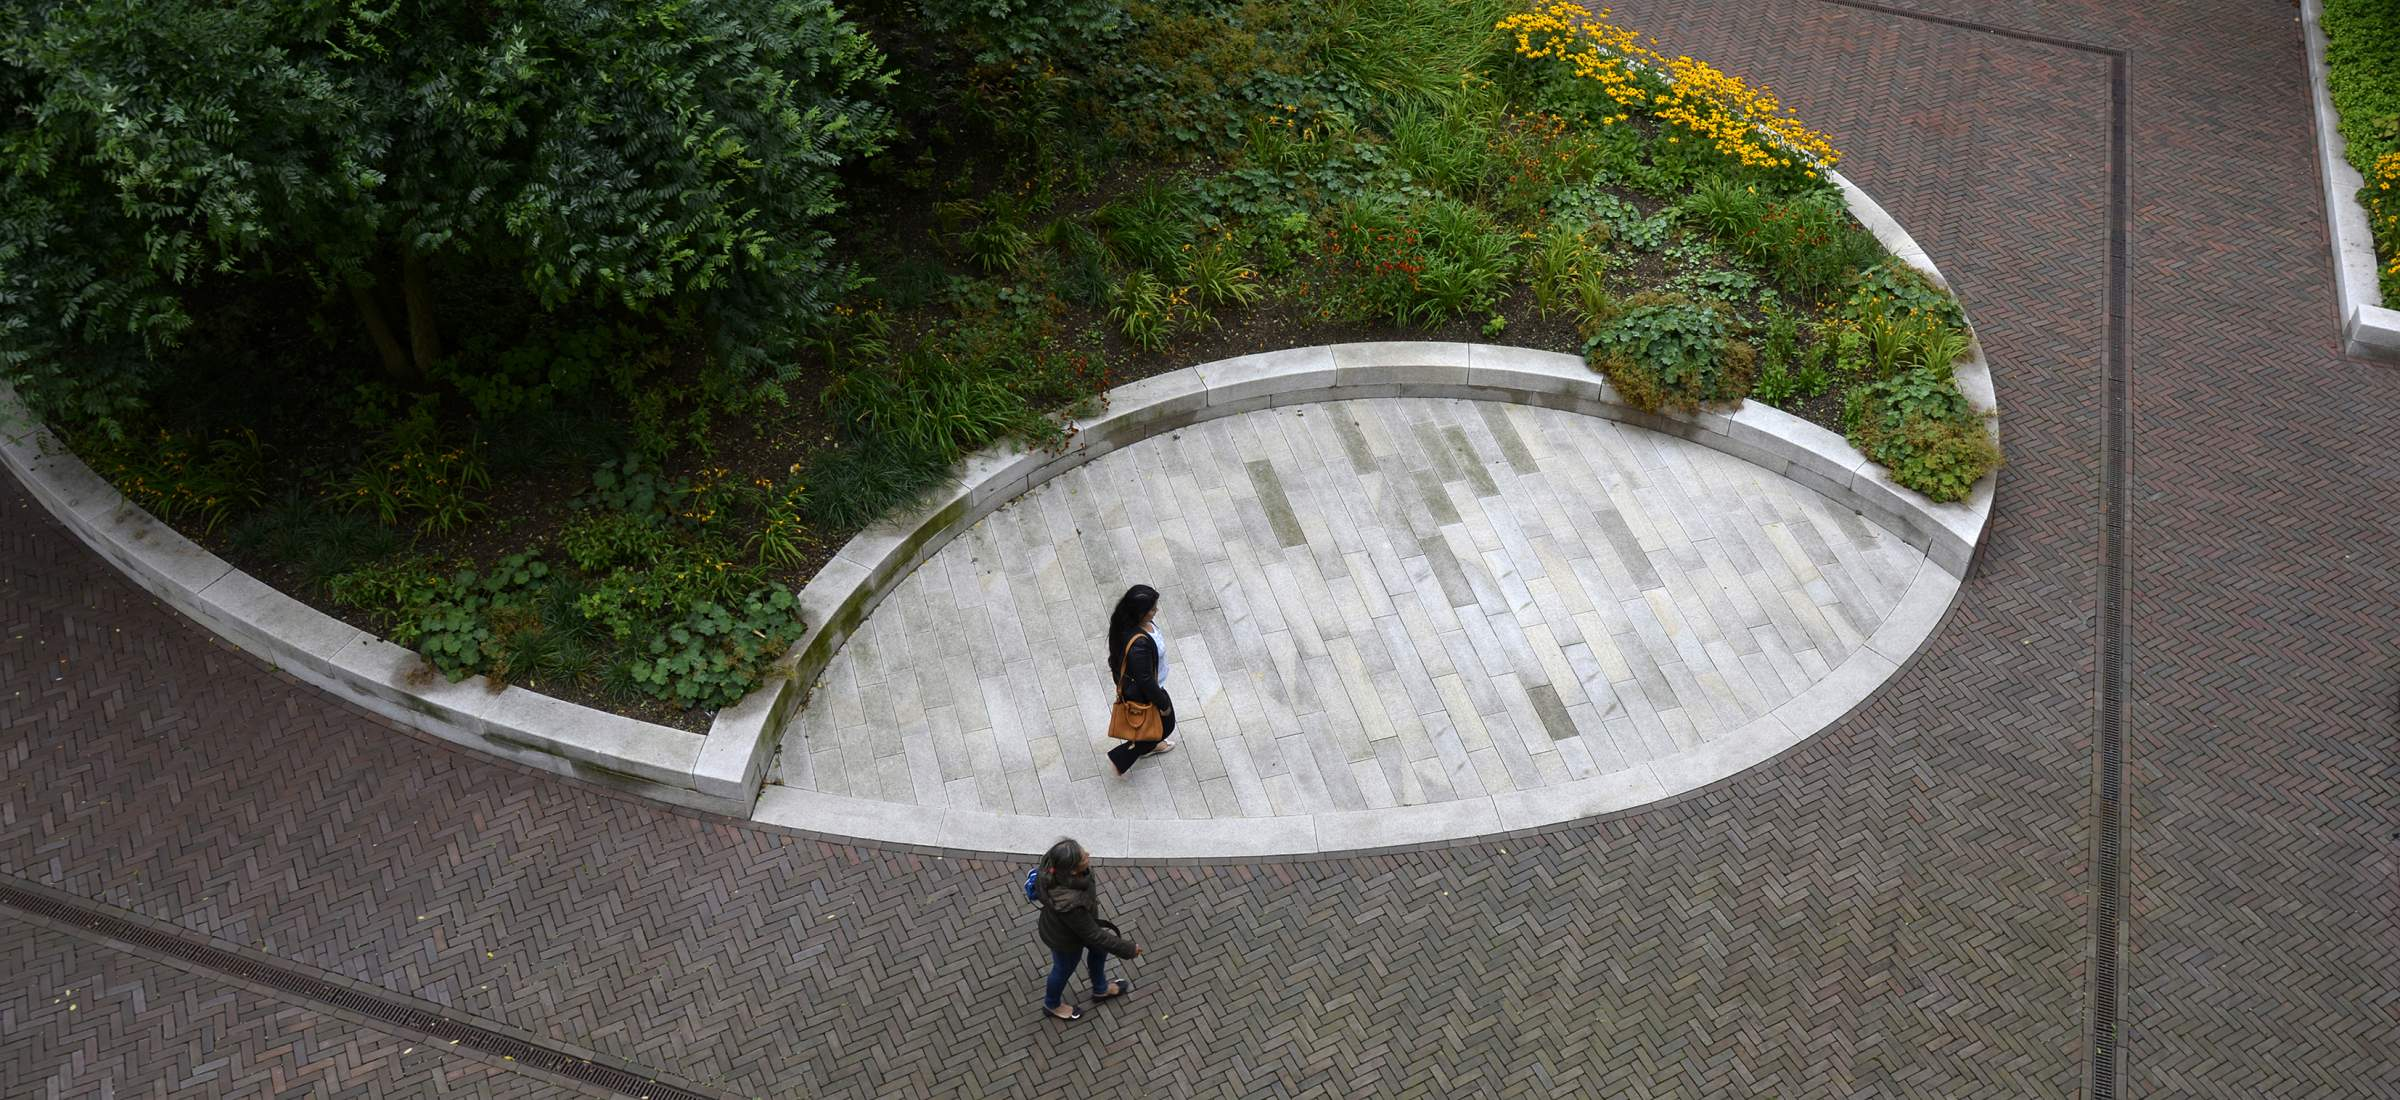 LANDLAB OEVERHOEK courtyard garden yellow from above_photo by Jeroen Bosch